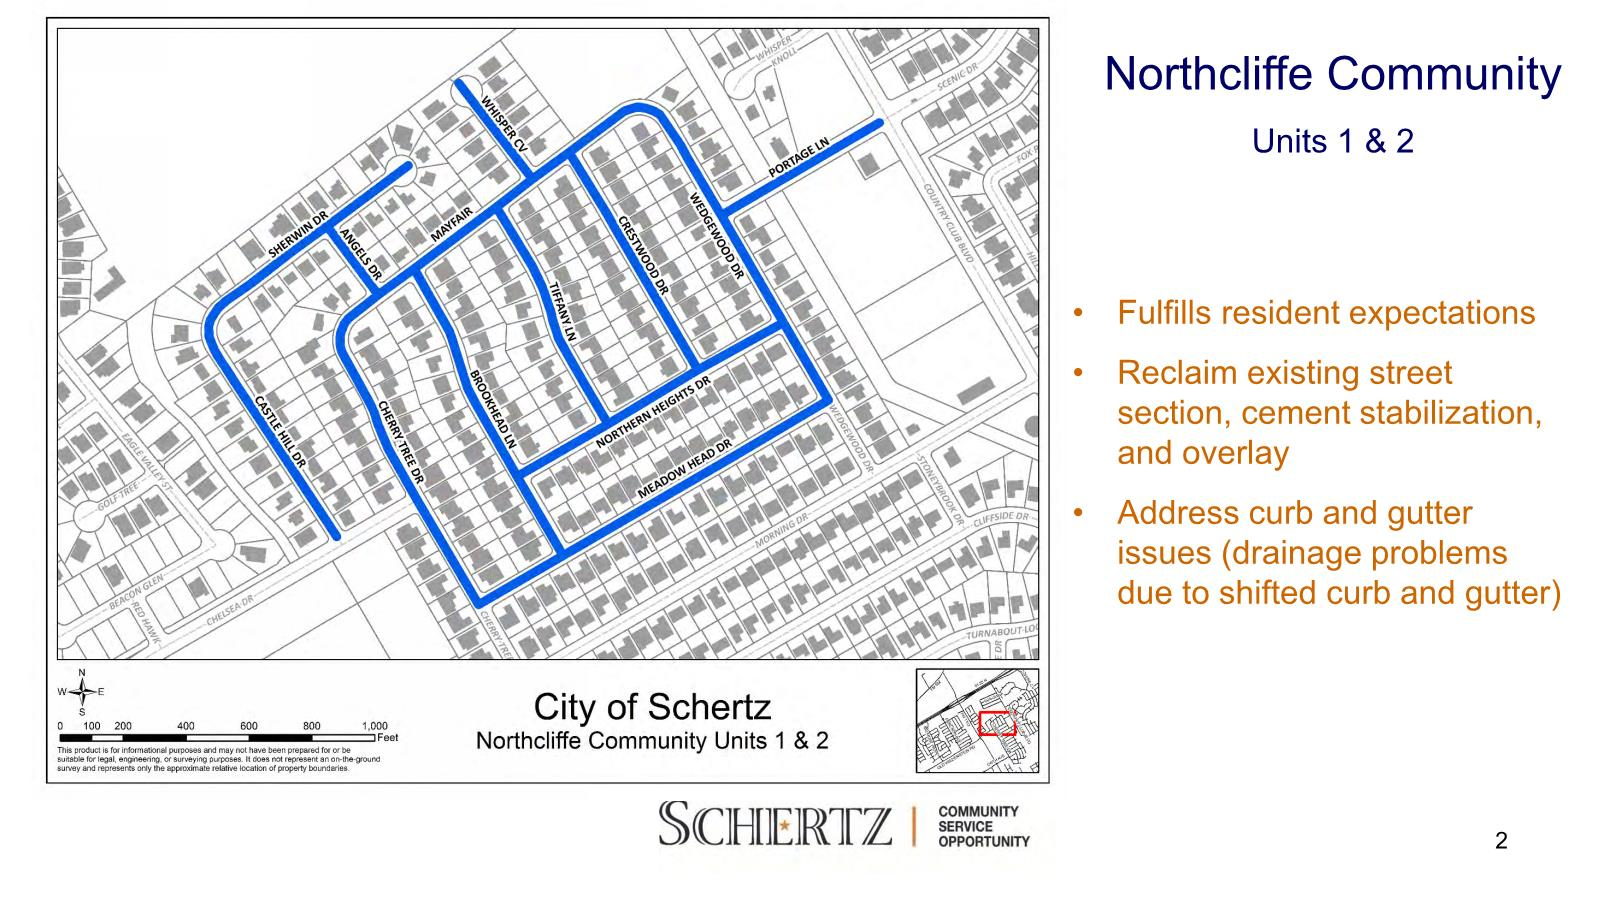 Northcliffe Community Map